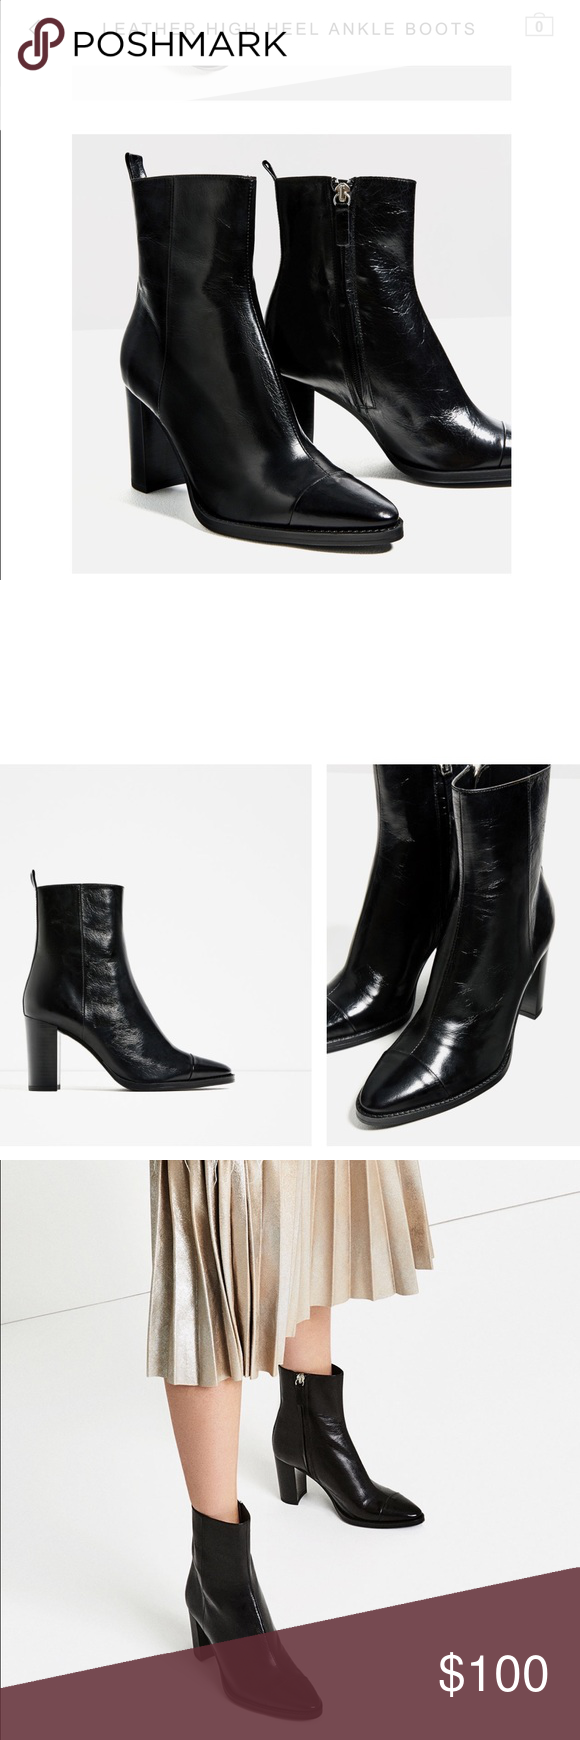 💥ZARA -Sale 🔥heel boot new leather New boot! Size 39 (us 8). New! Leather! Sold out! Fashion boot! Zara Shoes Heeled Boots